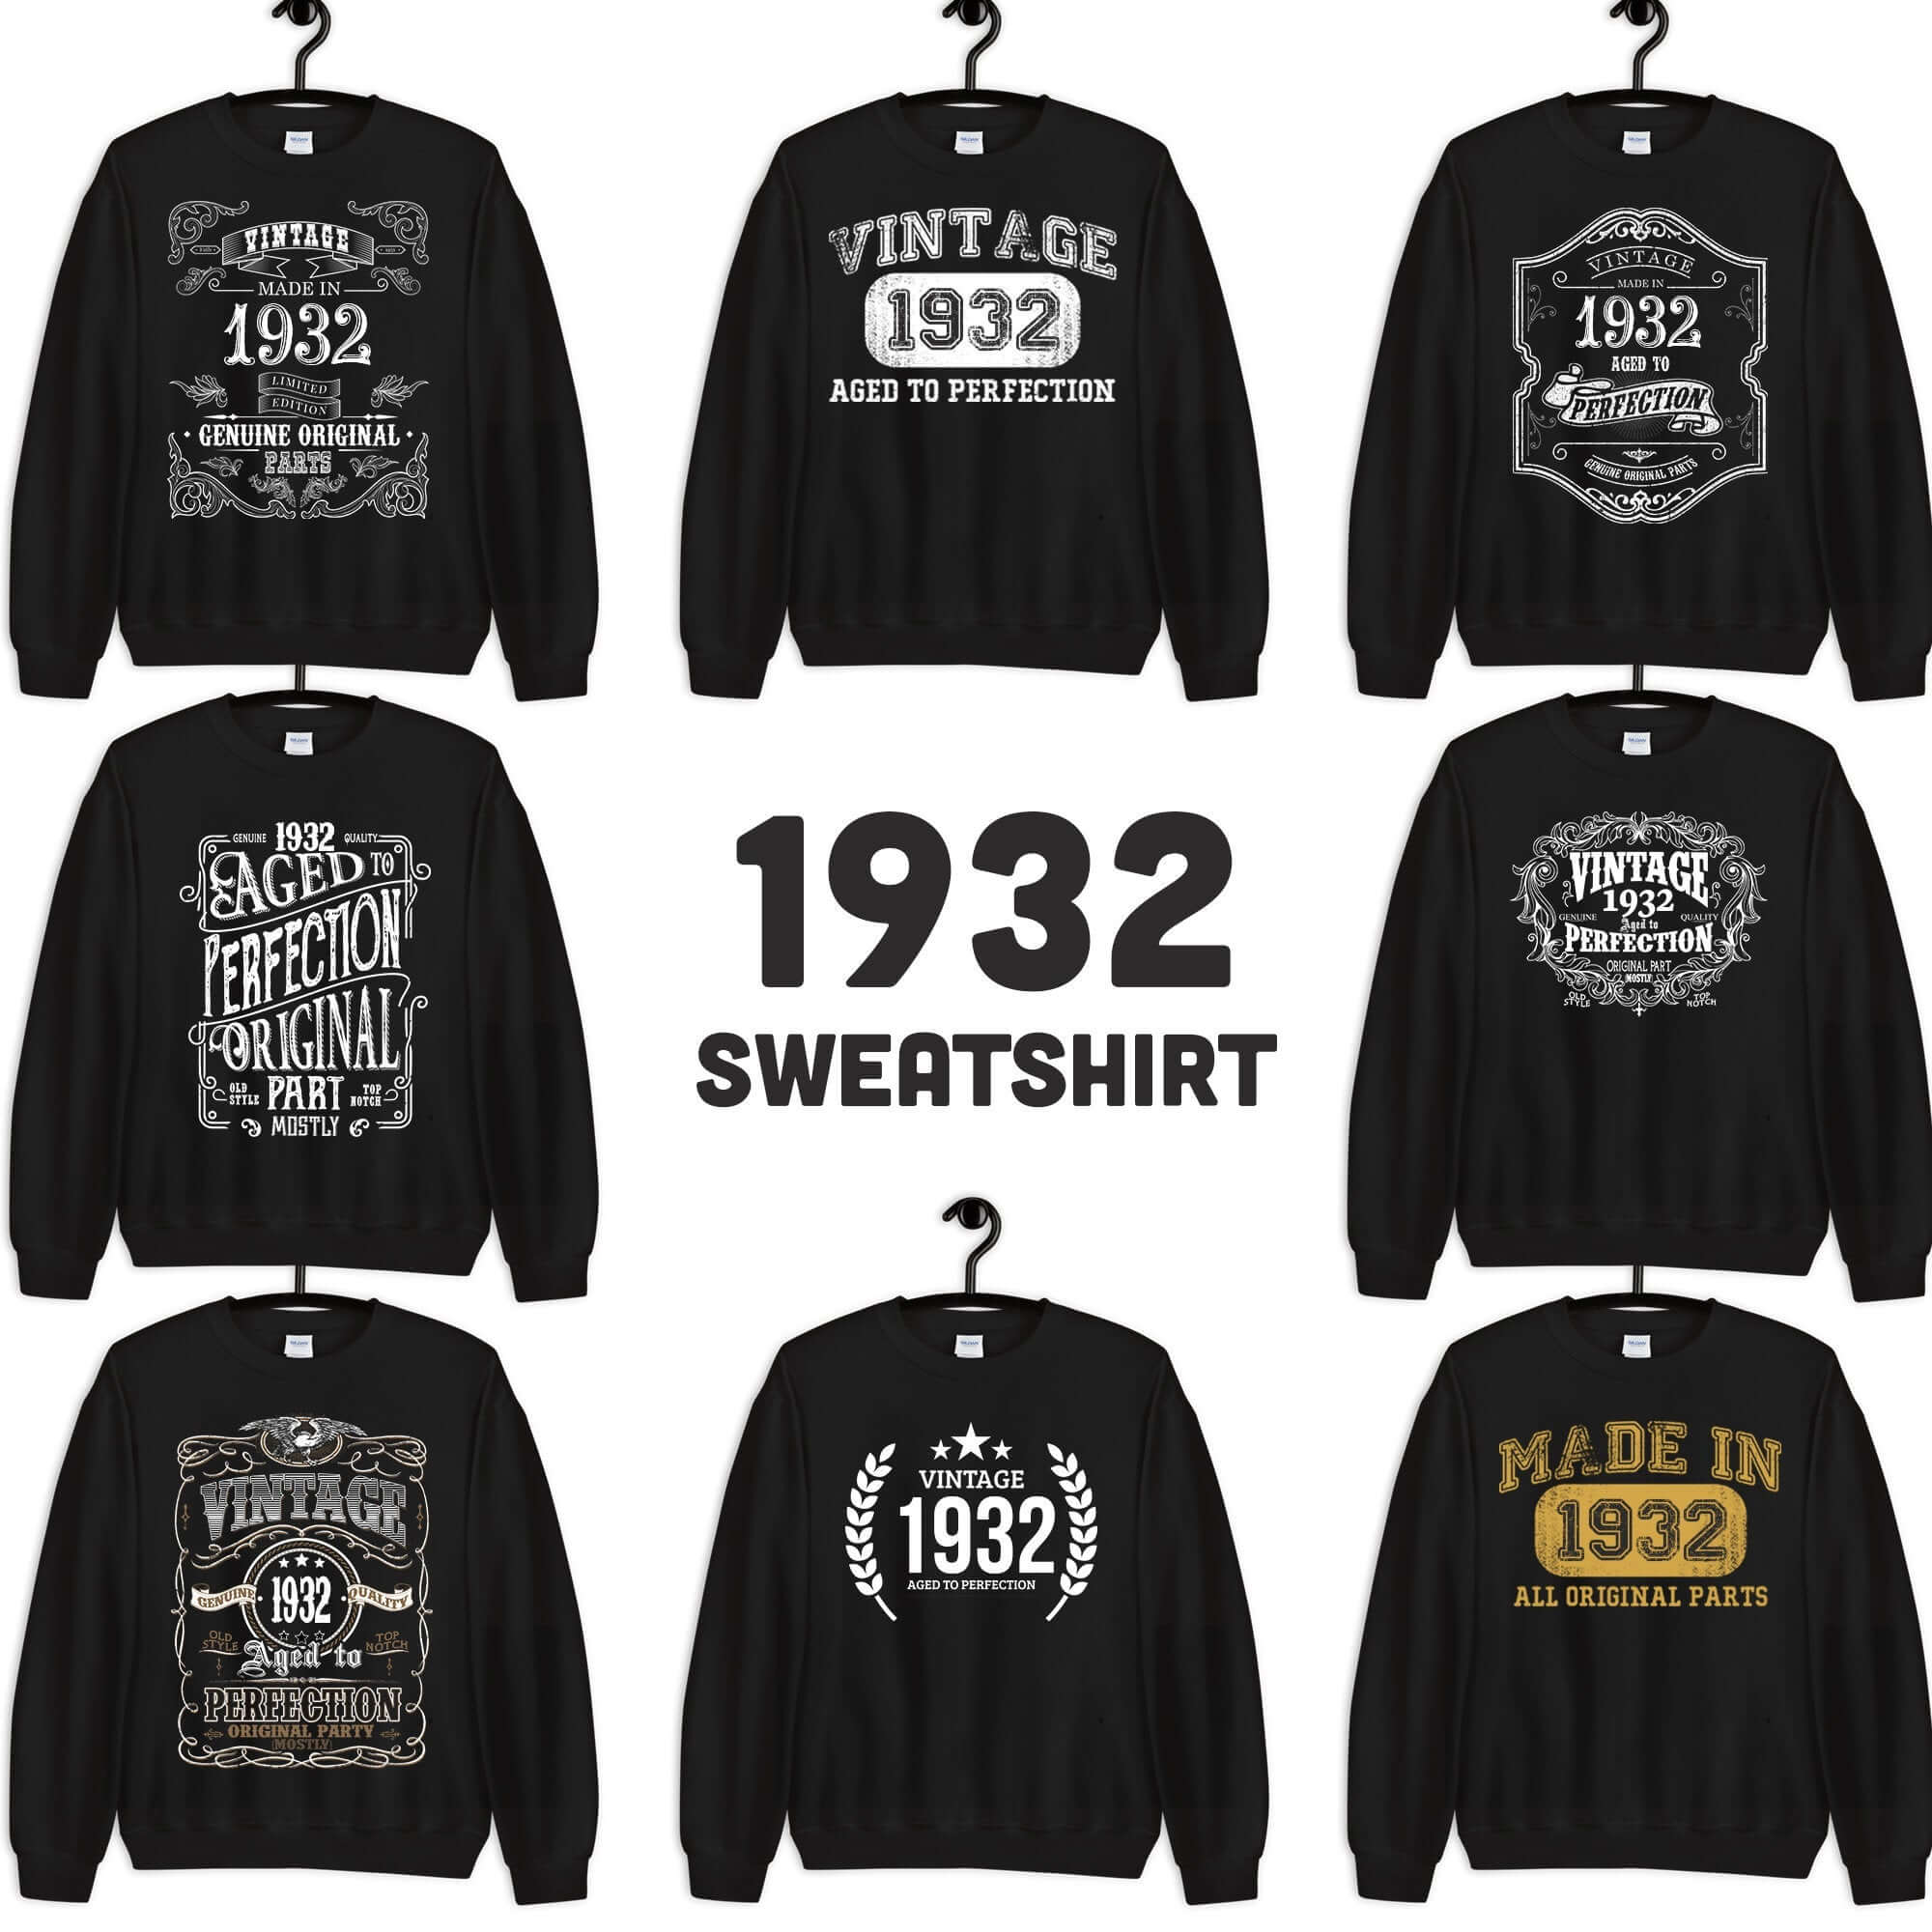 1932 Birthday Gift, Vintage Born in 1932 Sweatshirts 88th Birthday Made in 1932 Sweatshirt custom Birthday 88 Year Old Size: S, M, L, XL, 2X, 3X, 4X, 5XDesign: #1, #2, #3, #4, #5, #6, #7, #8Color: Black